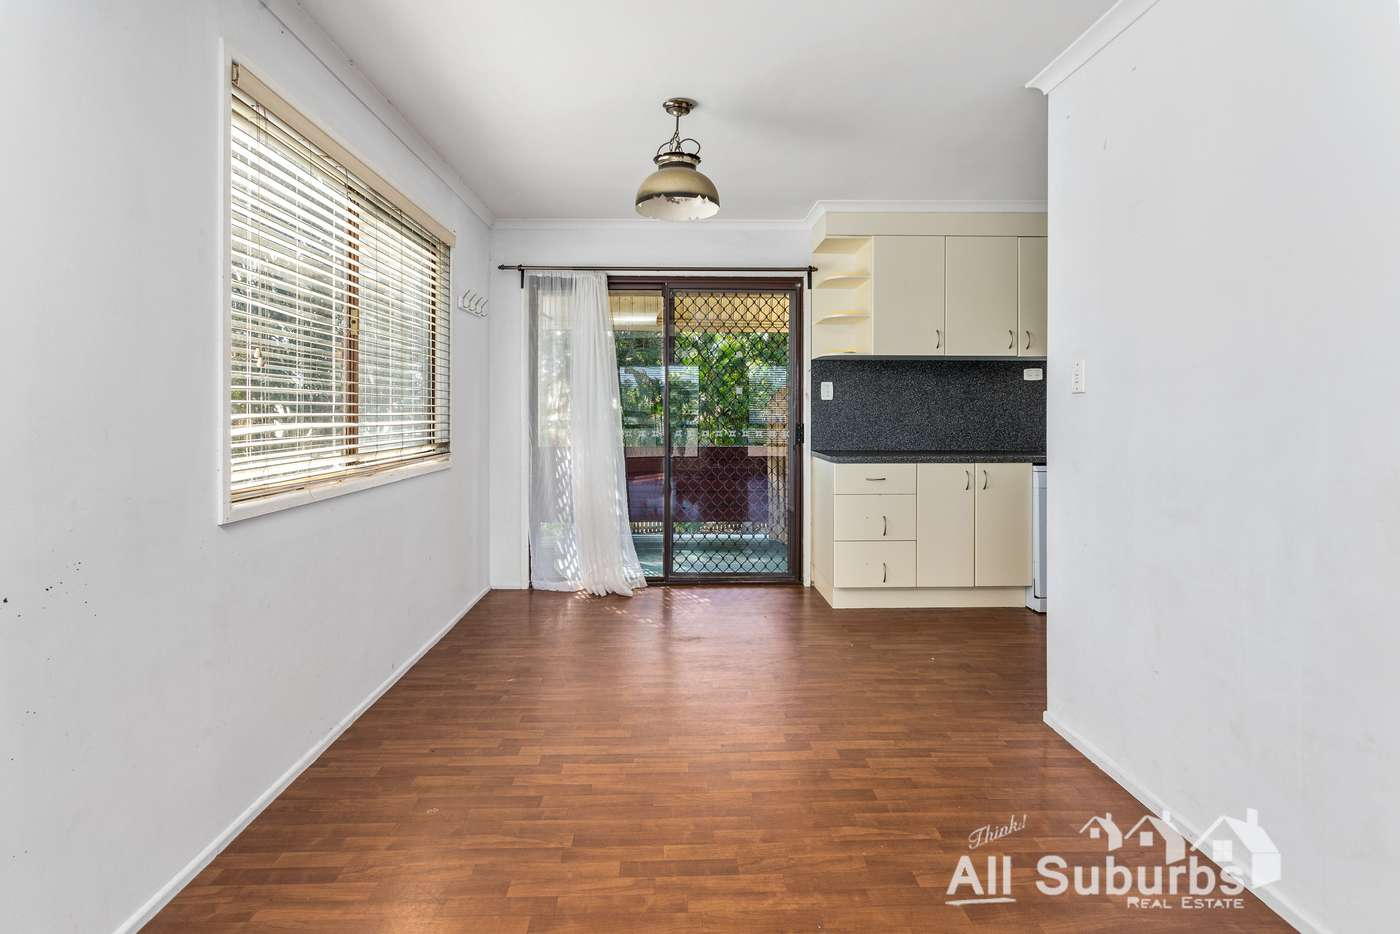 Fifth view of Homely house listing, 6 Orm Court, Marsden QLD 4132